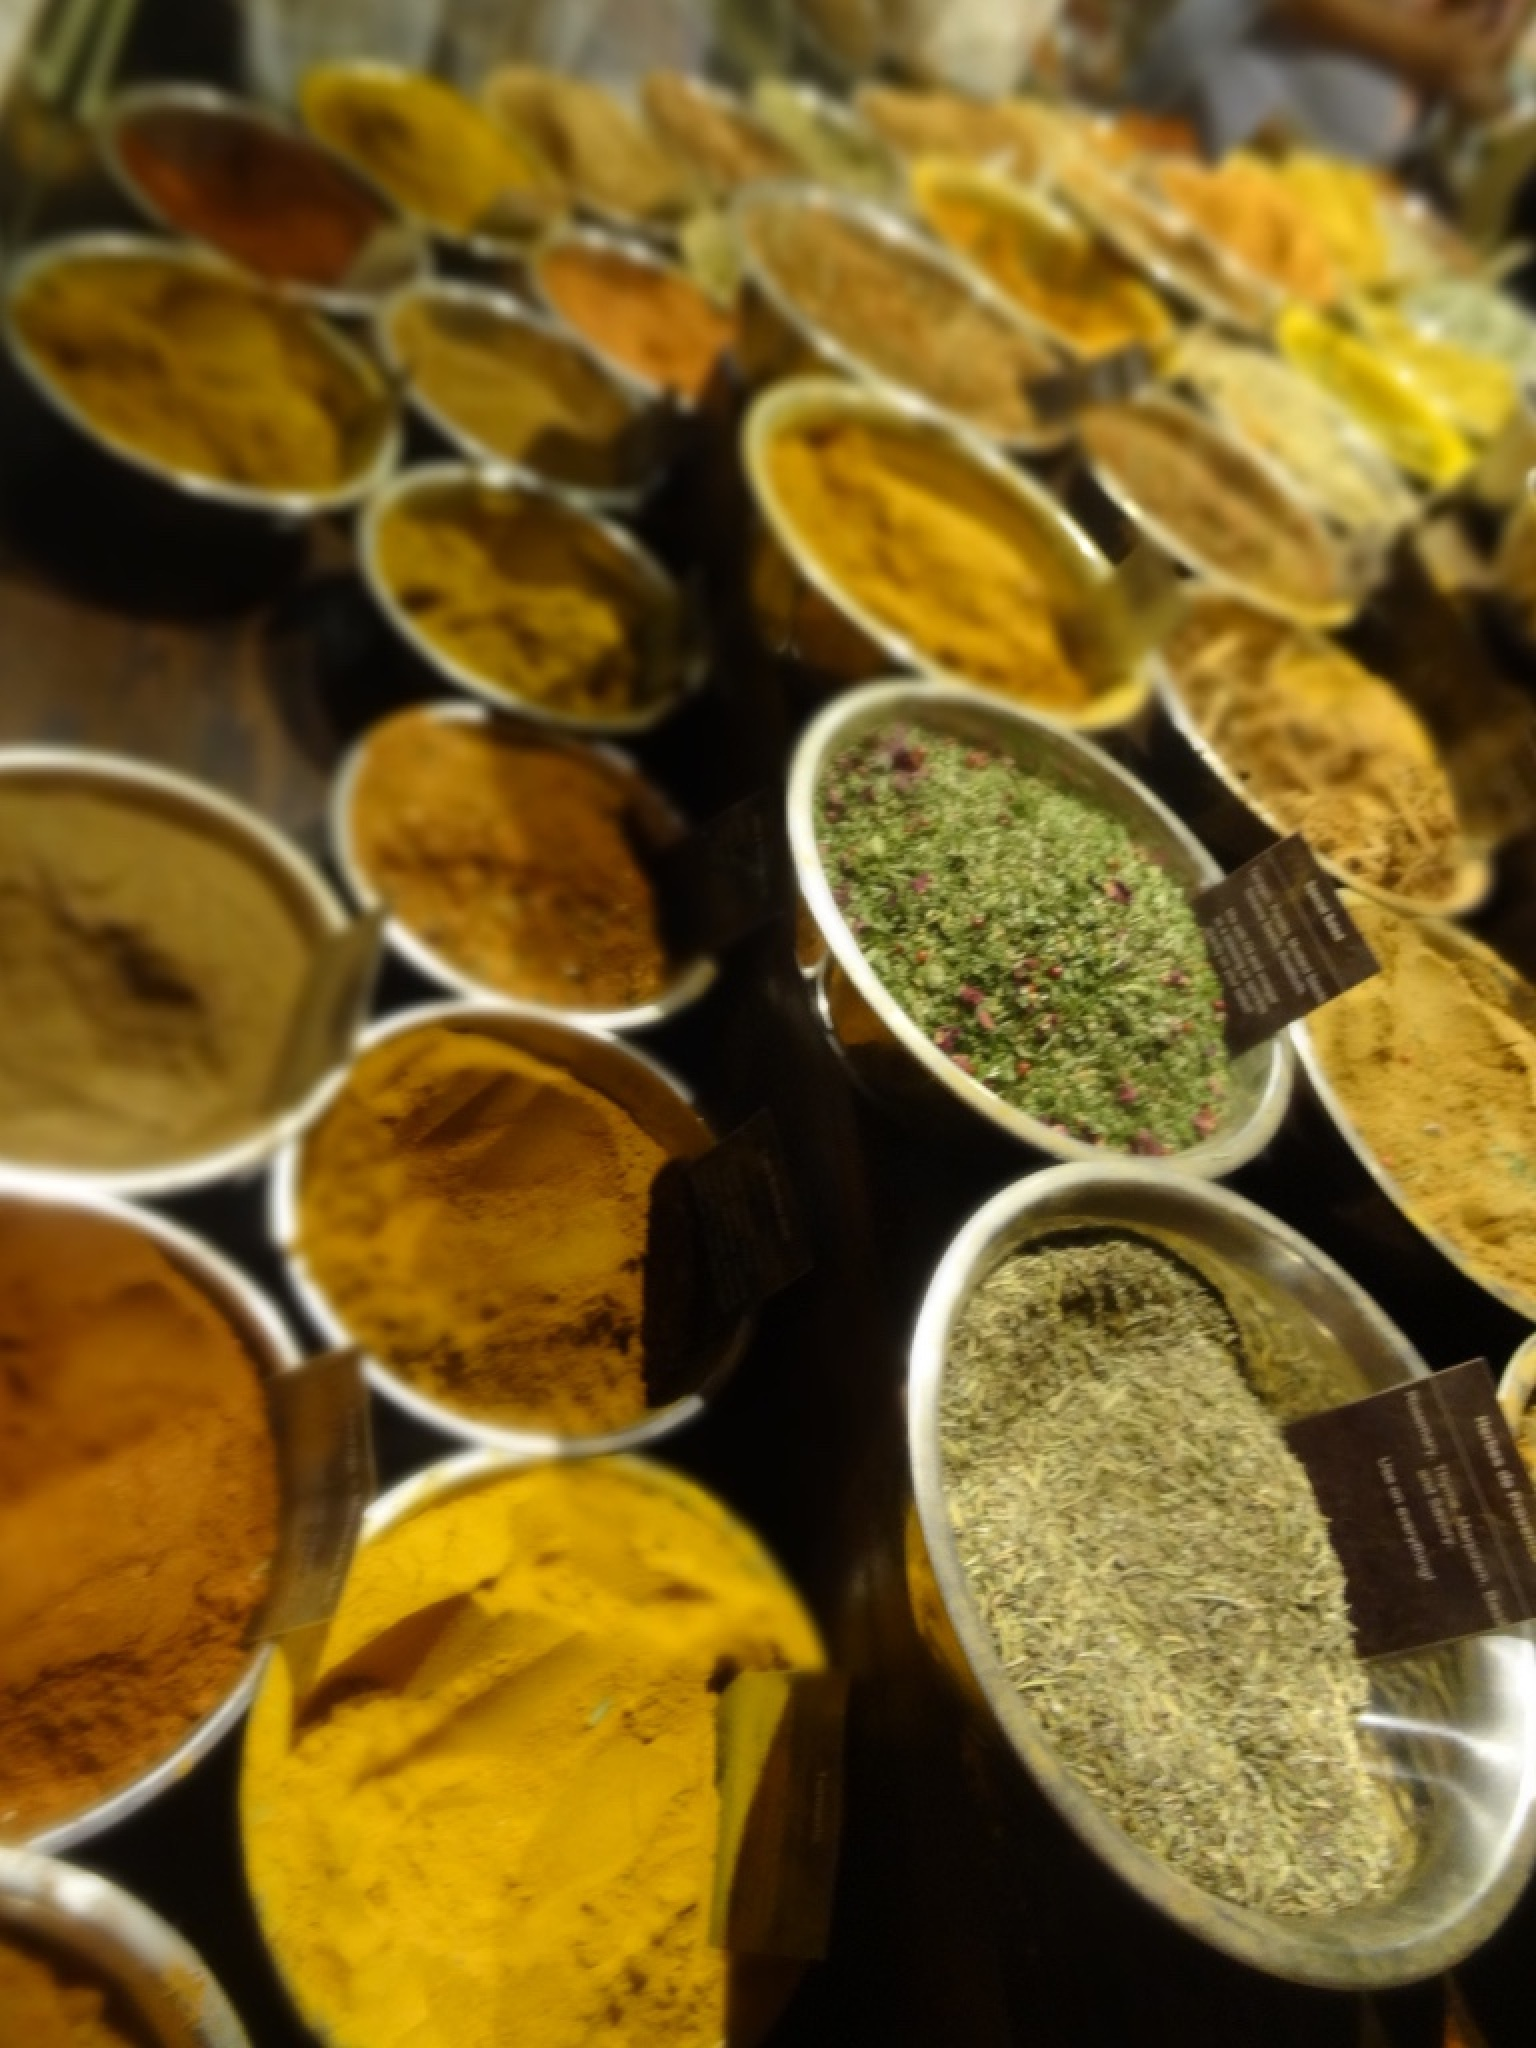 Spices by samantha.jenkins.5030